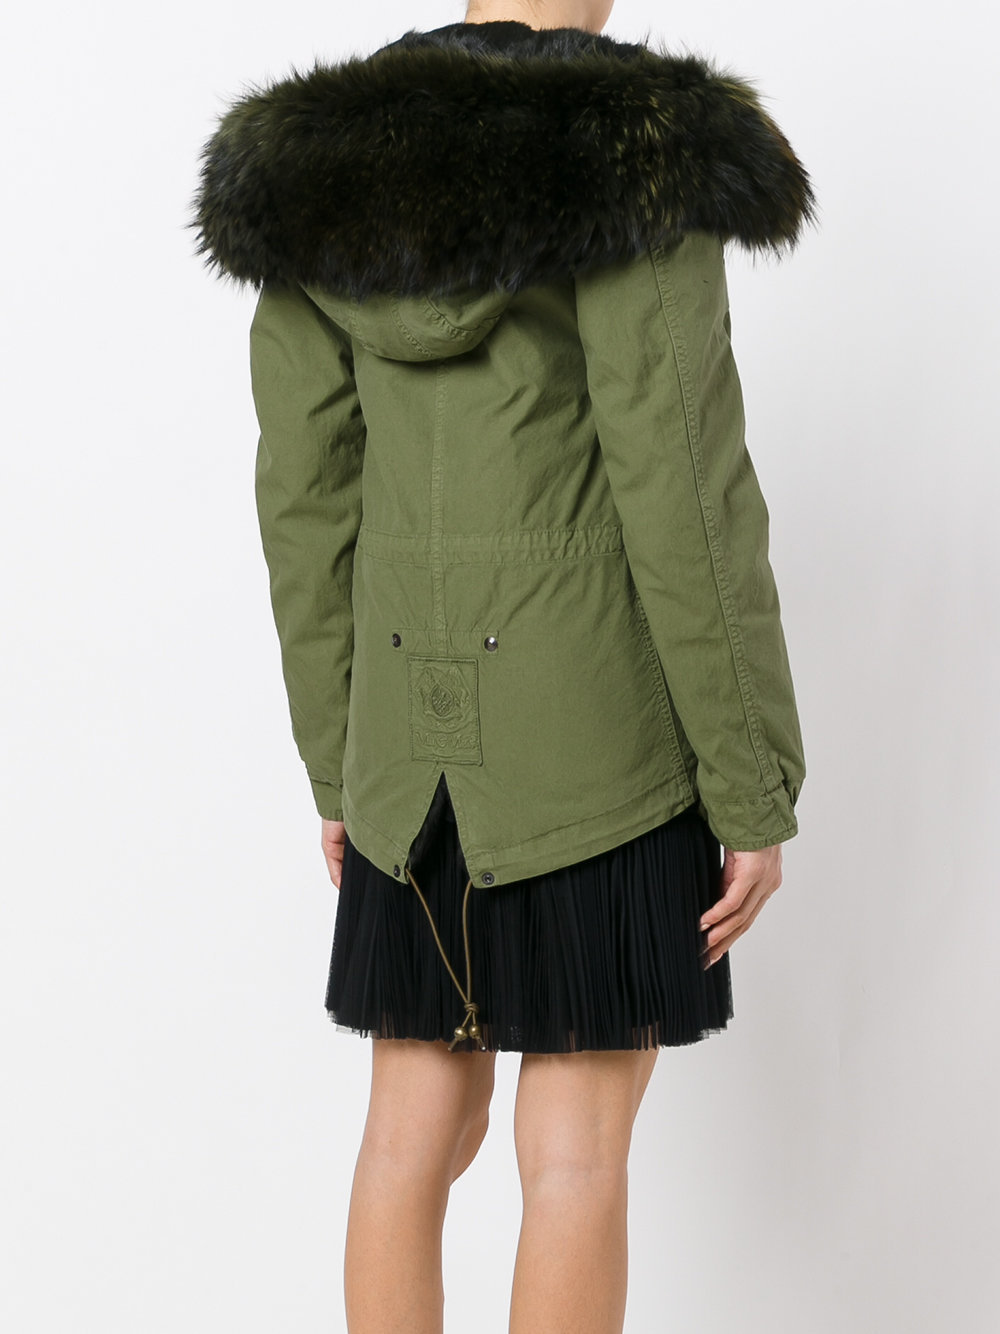 MRMRS033 CANVAS PARKA MINI WITH LAPIN FUR LINING